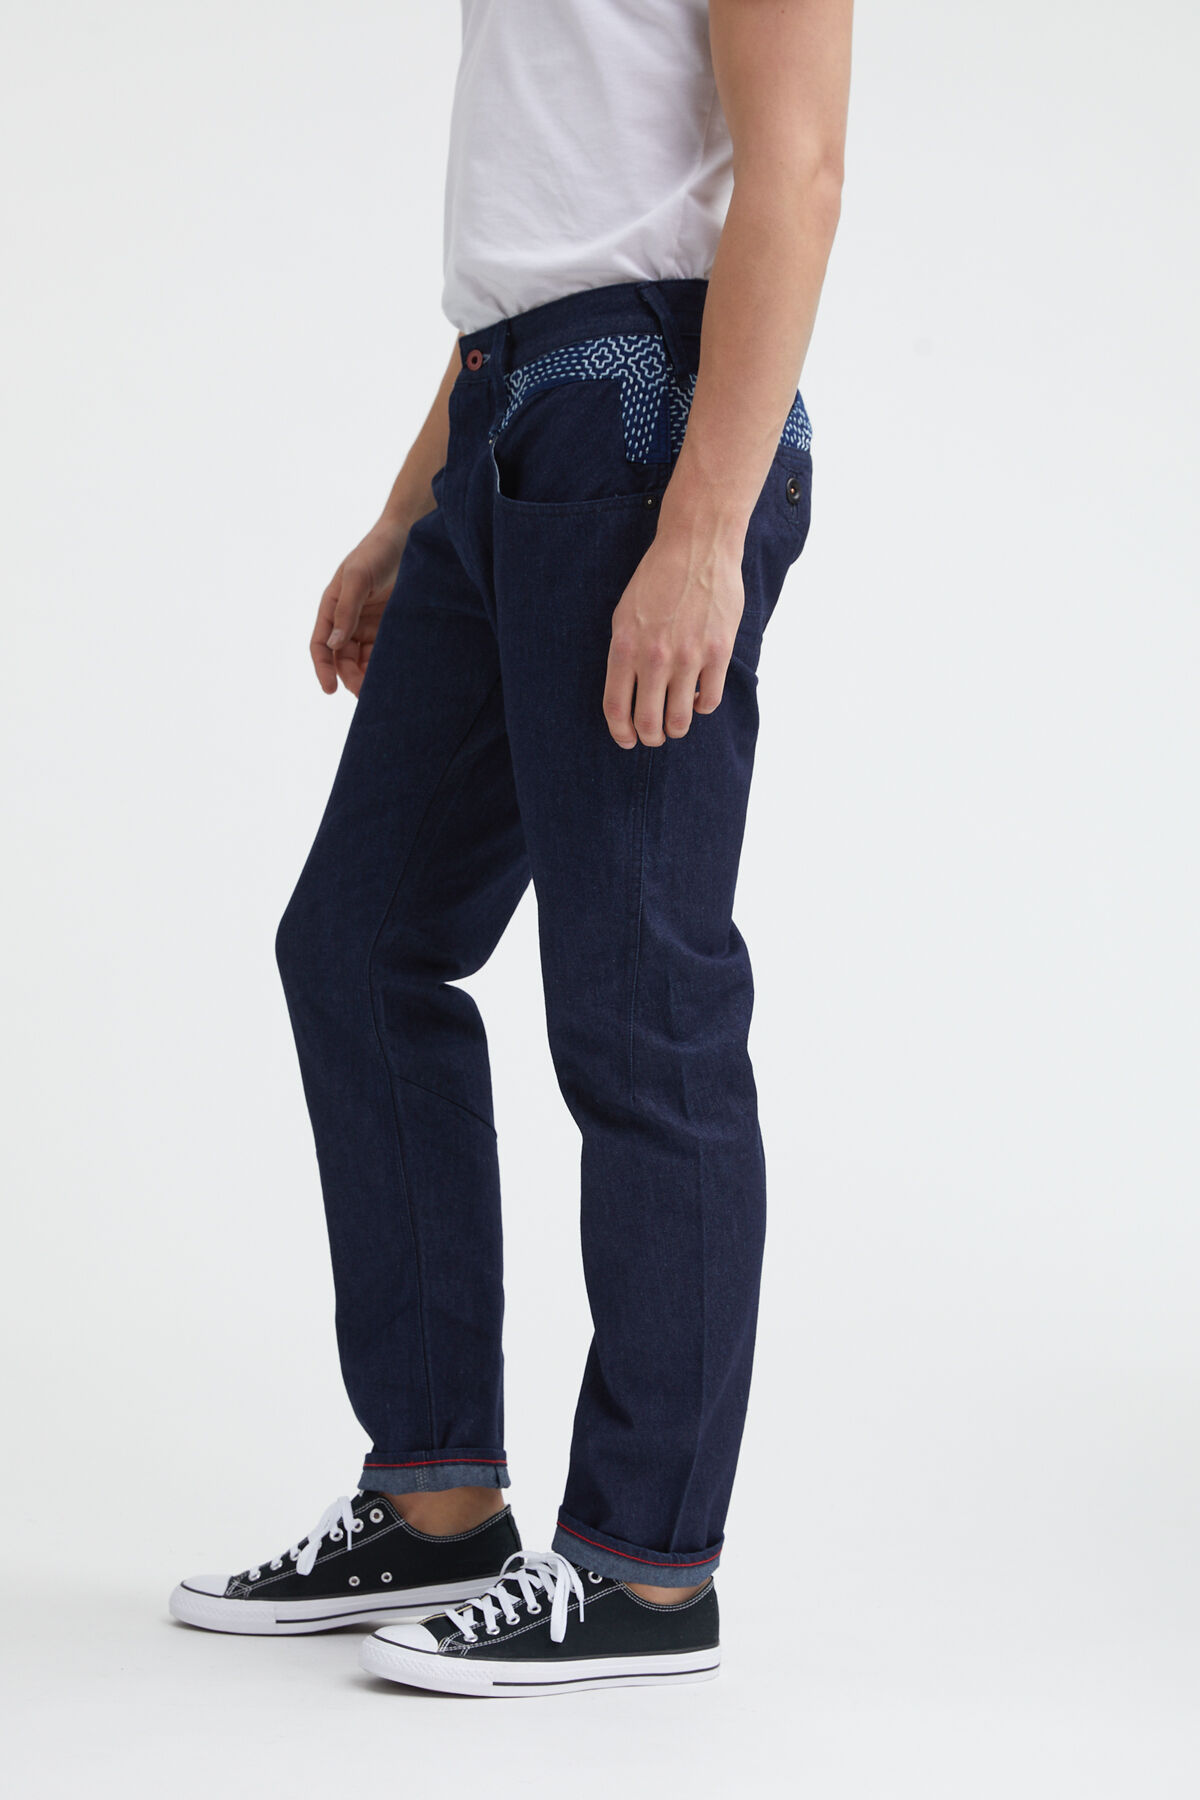 CROSSBACK 1MIX Boro Recycled Denim - Carrot Fit